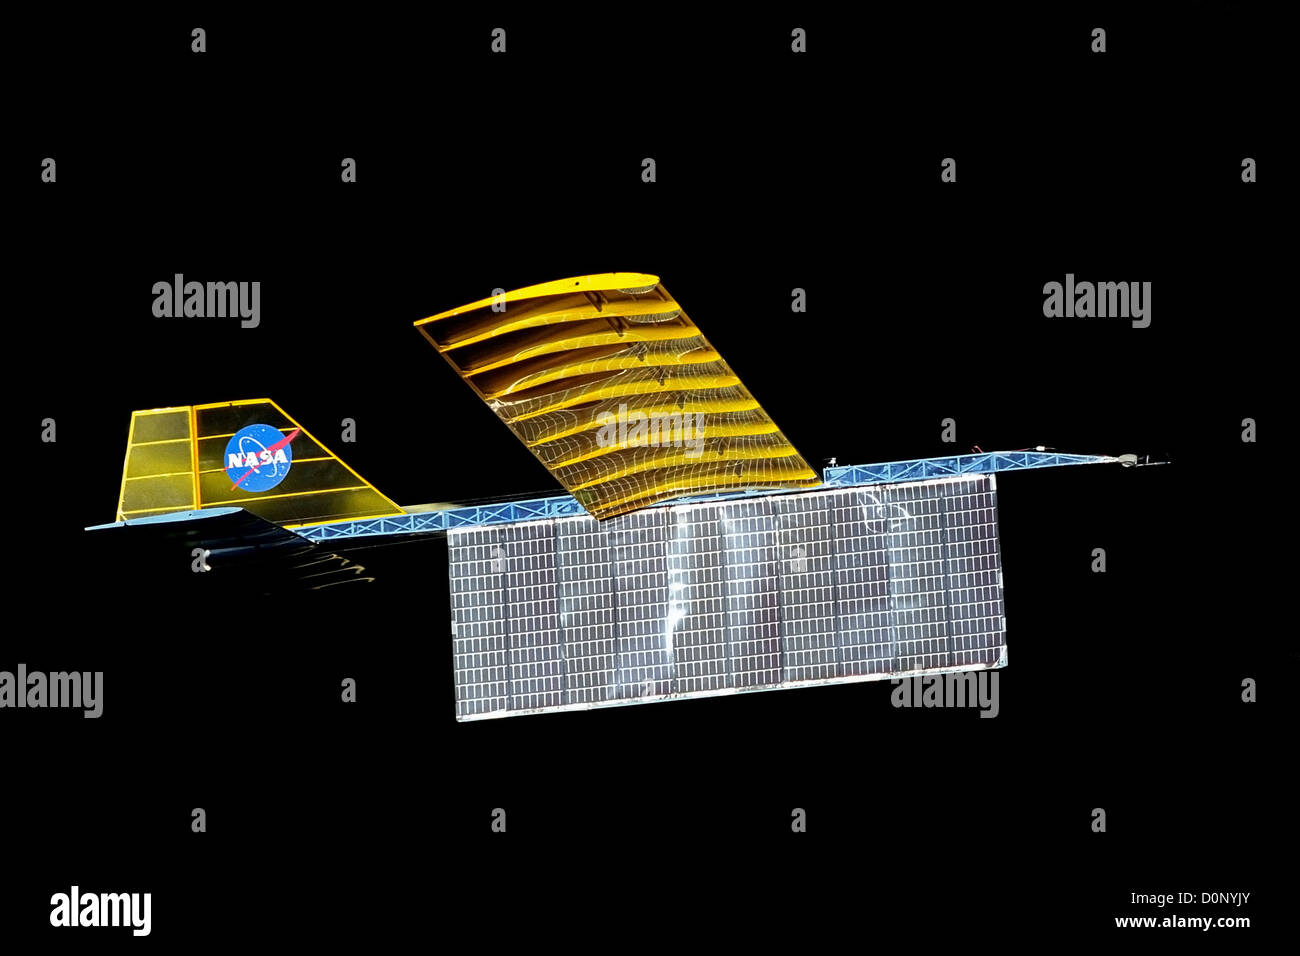 Experimental Solar Powered Aircraft Model - Stock Image